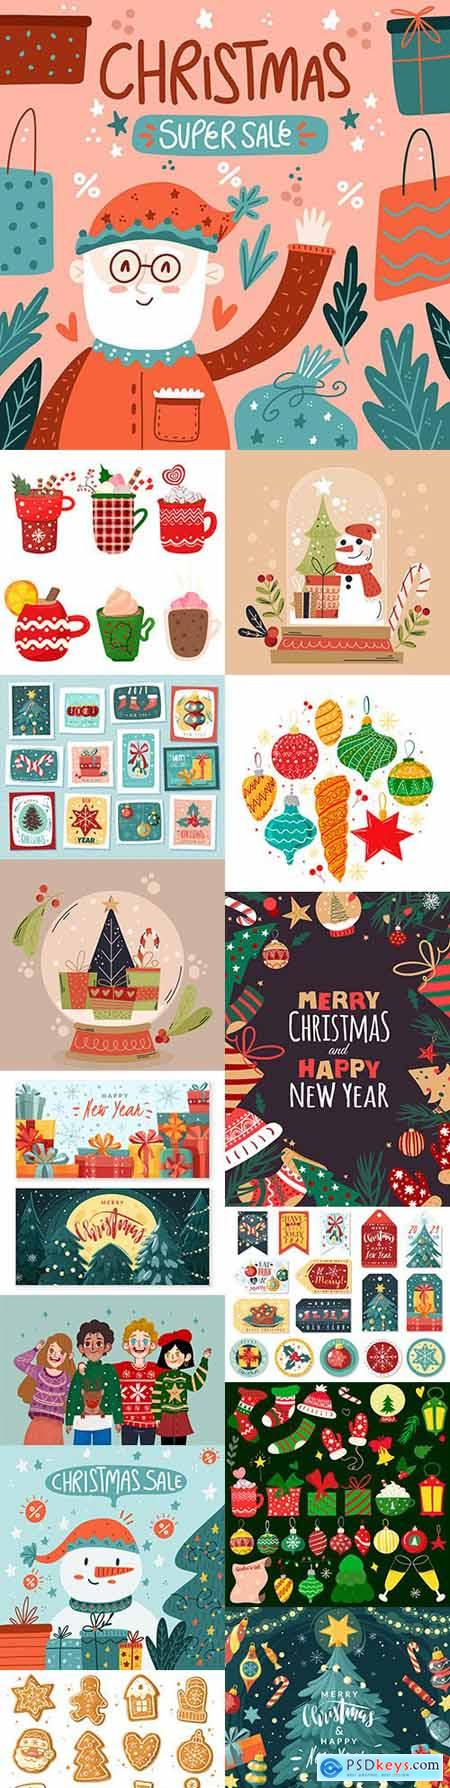 Christmas sales, people in knitted sweaters and temetic hand-drawn illustrations